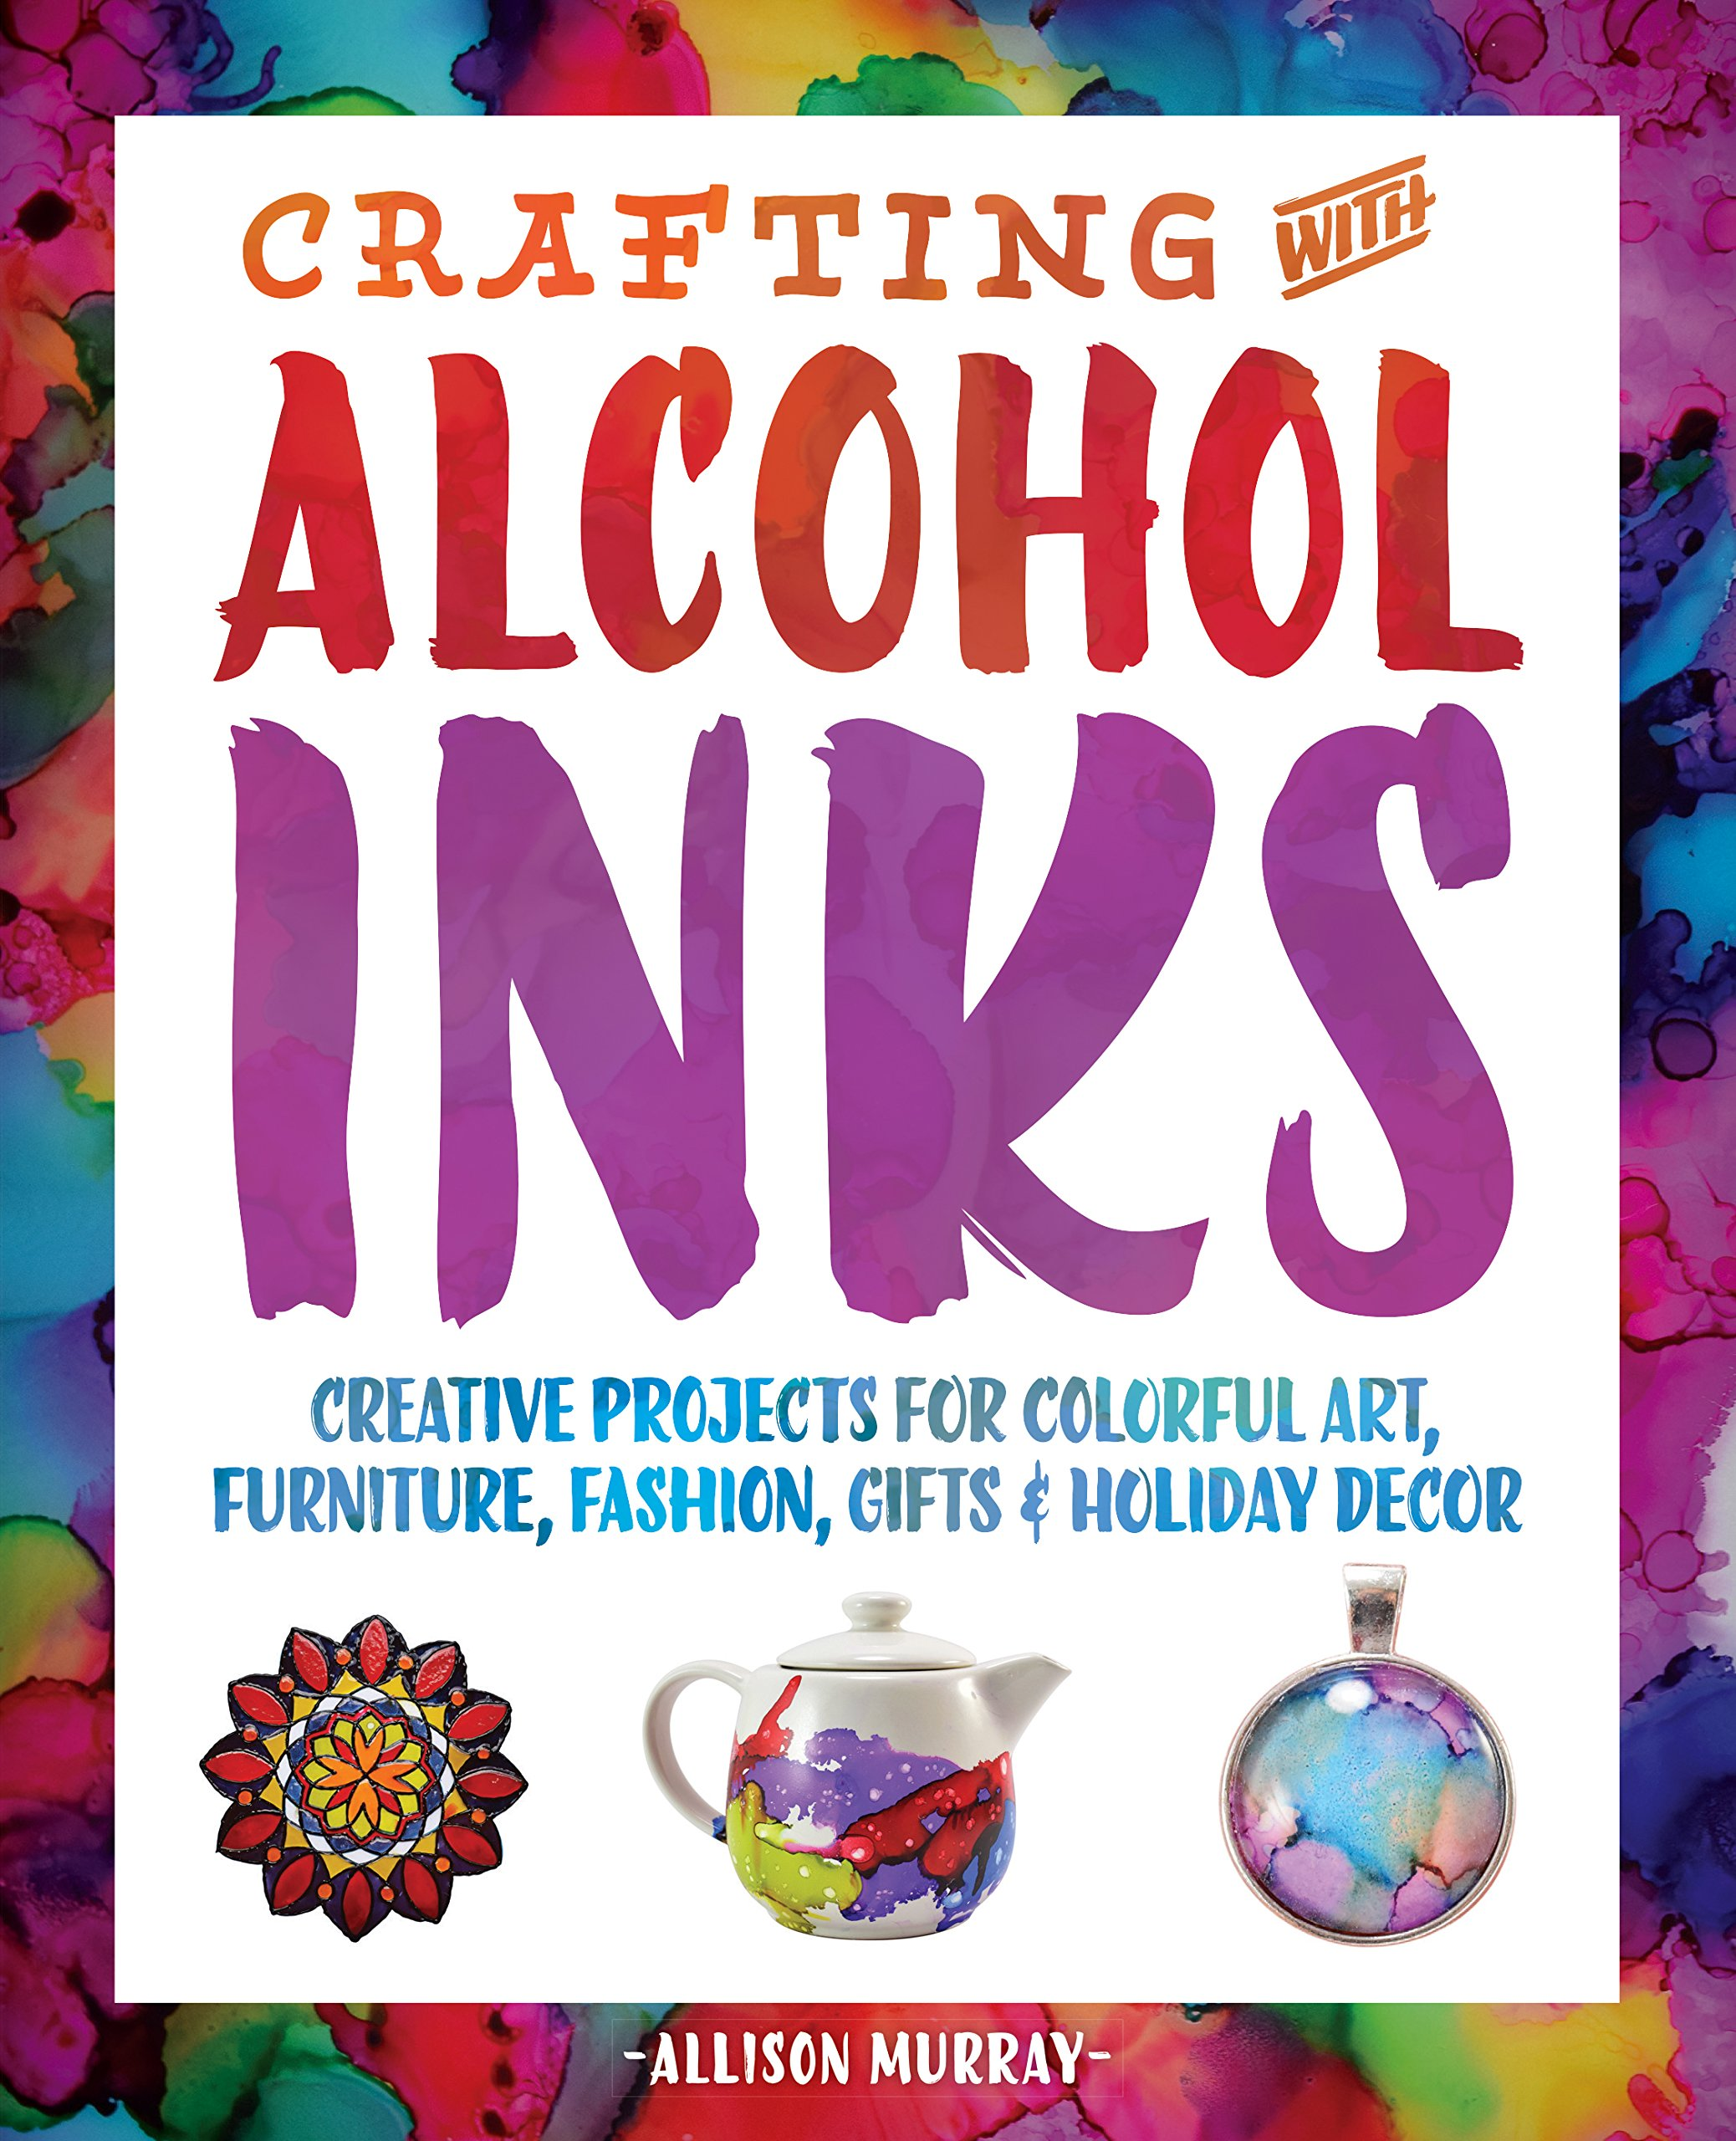 Crafting With Alcohol Inks  Creative Projects For Colorful Art Furniture Fashion Gifts And Holiday Decor